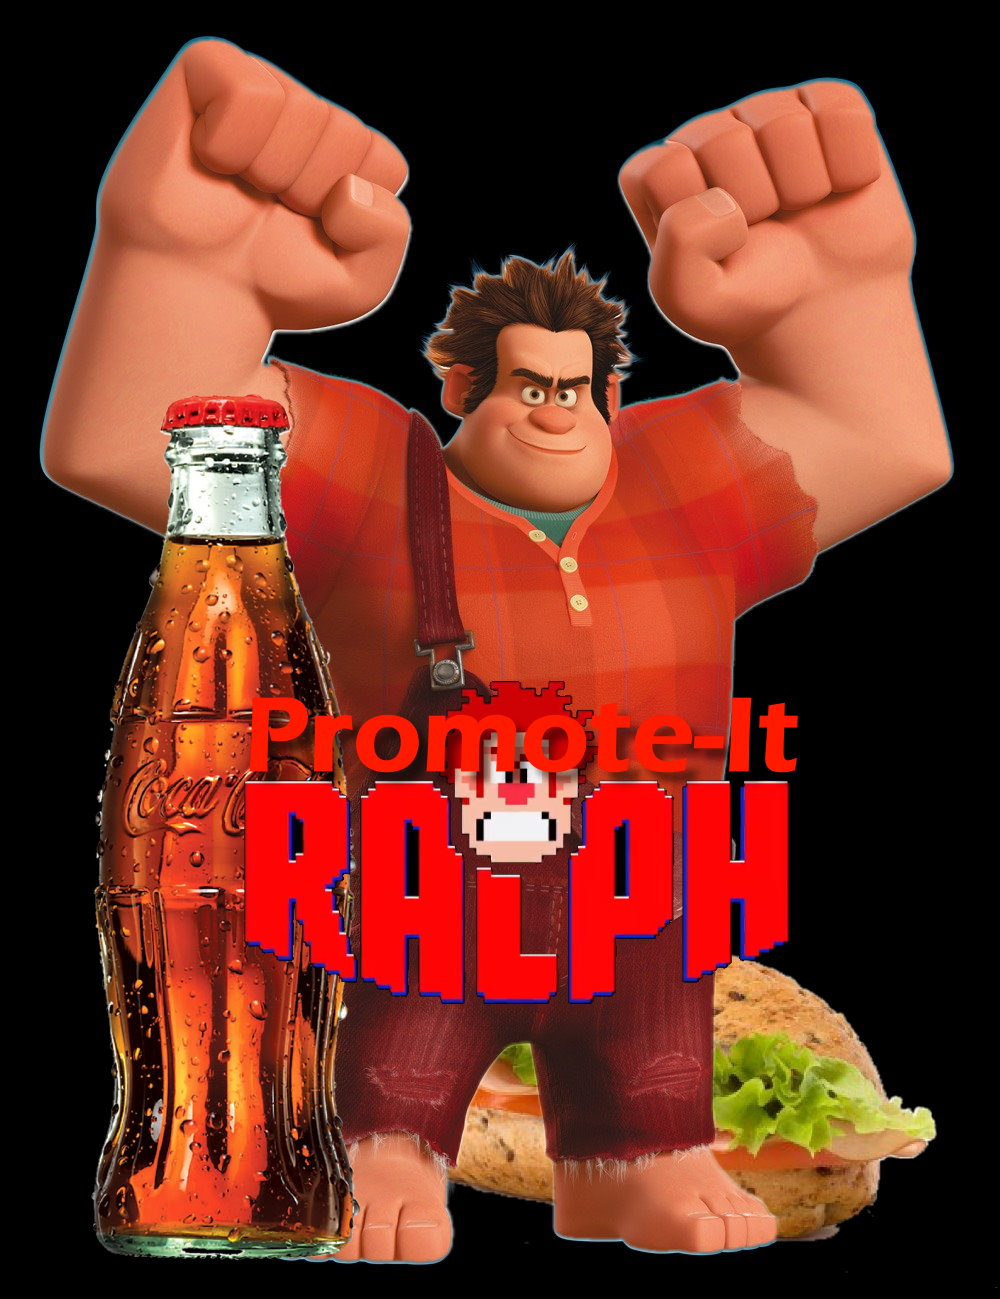 Promote it ralph brandplacement in kid movie